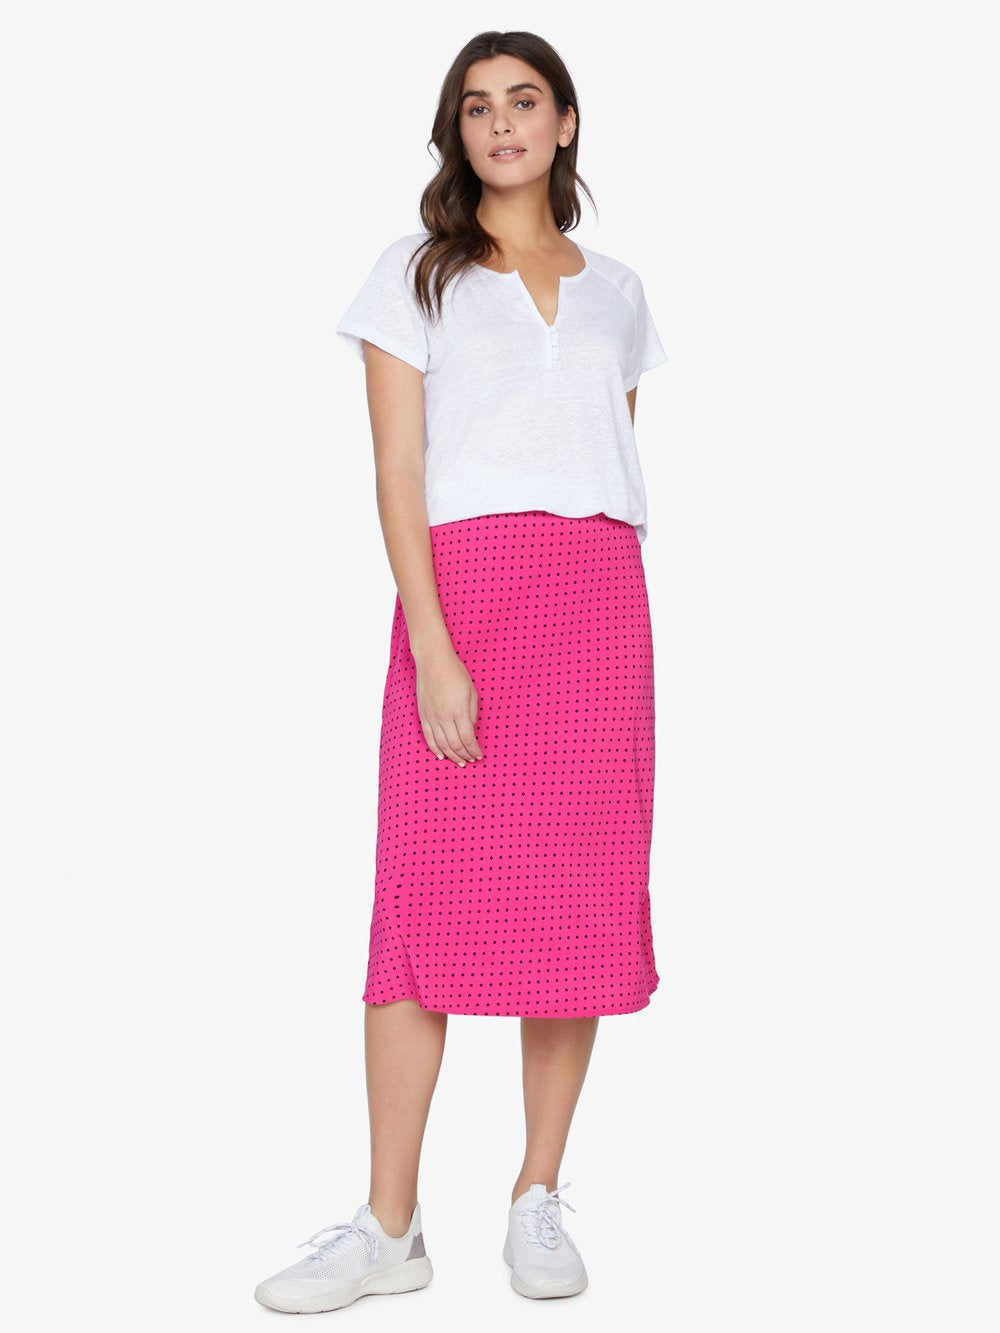 Everyday Midi Skirt - Hot Dot